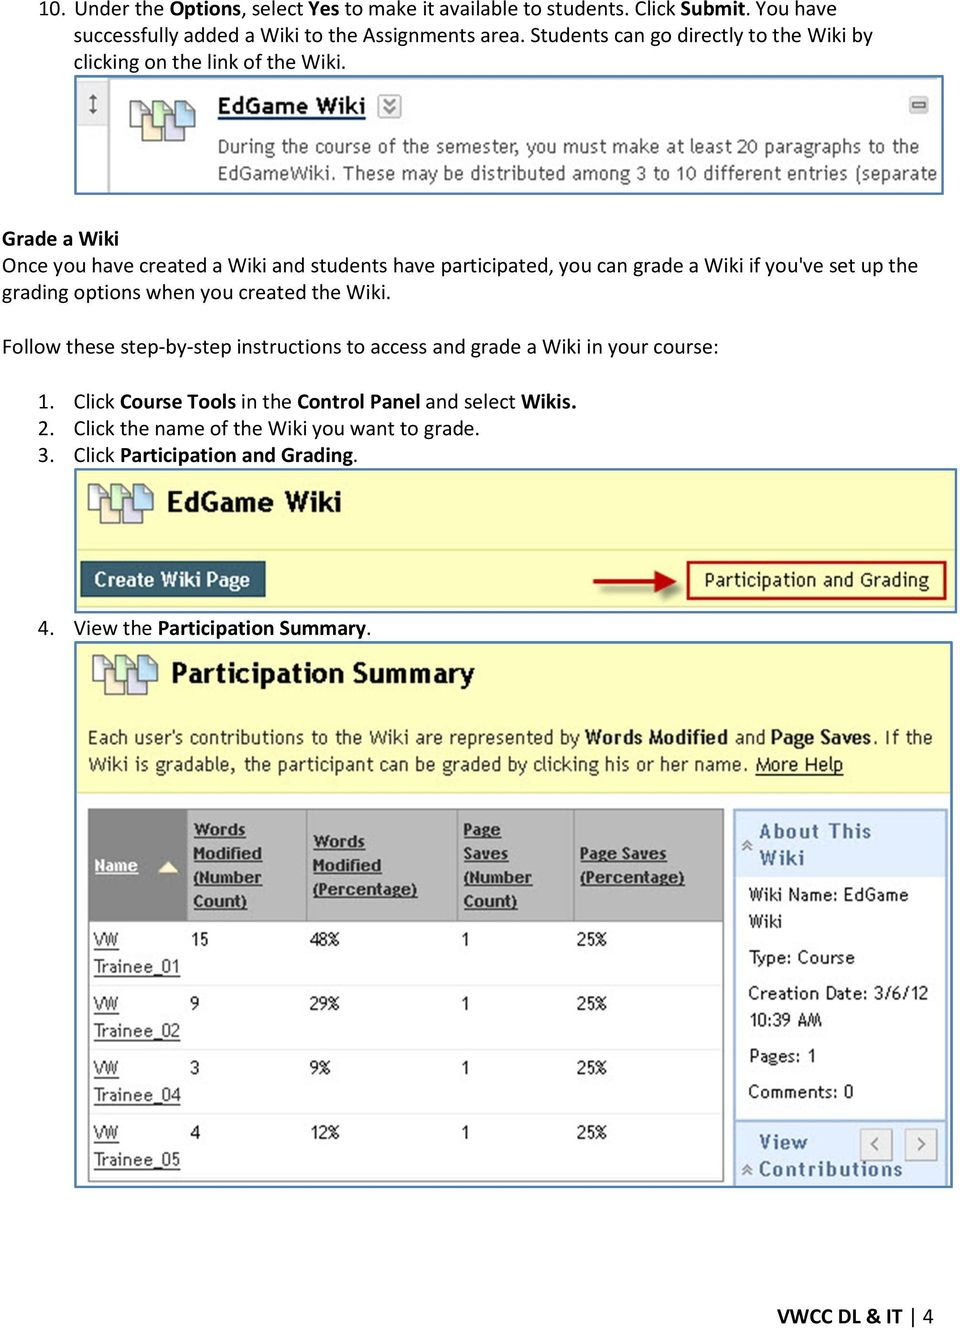 Grade a Wiki Once you have created a Wiki and students have participated, you can grade a Wiki if you've set up the grading options when you created the Wiki.